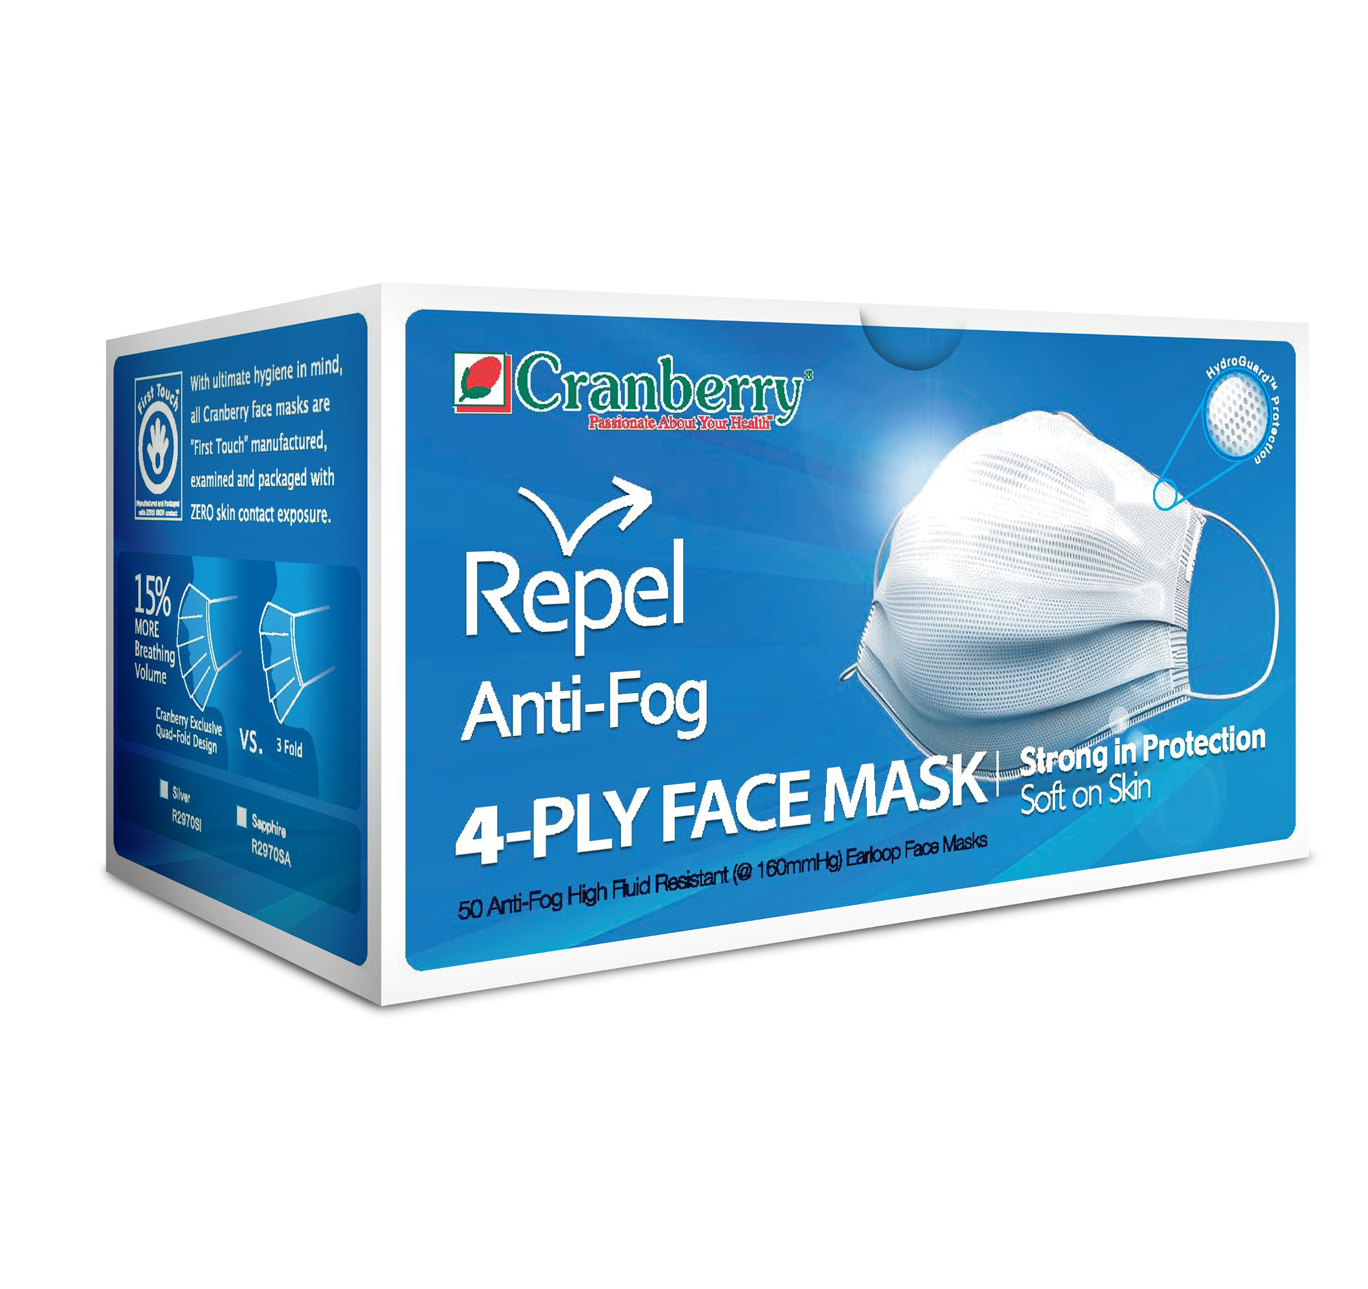 Cranberry Repel Anti-Fog 4-Ply Face Mask-0